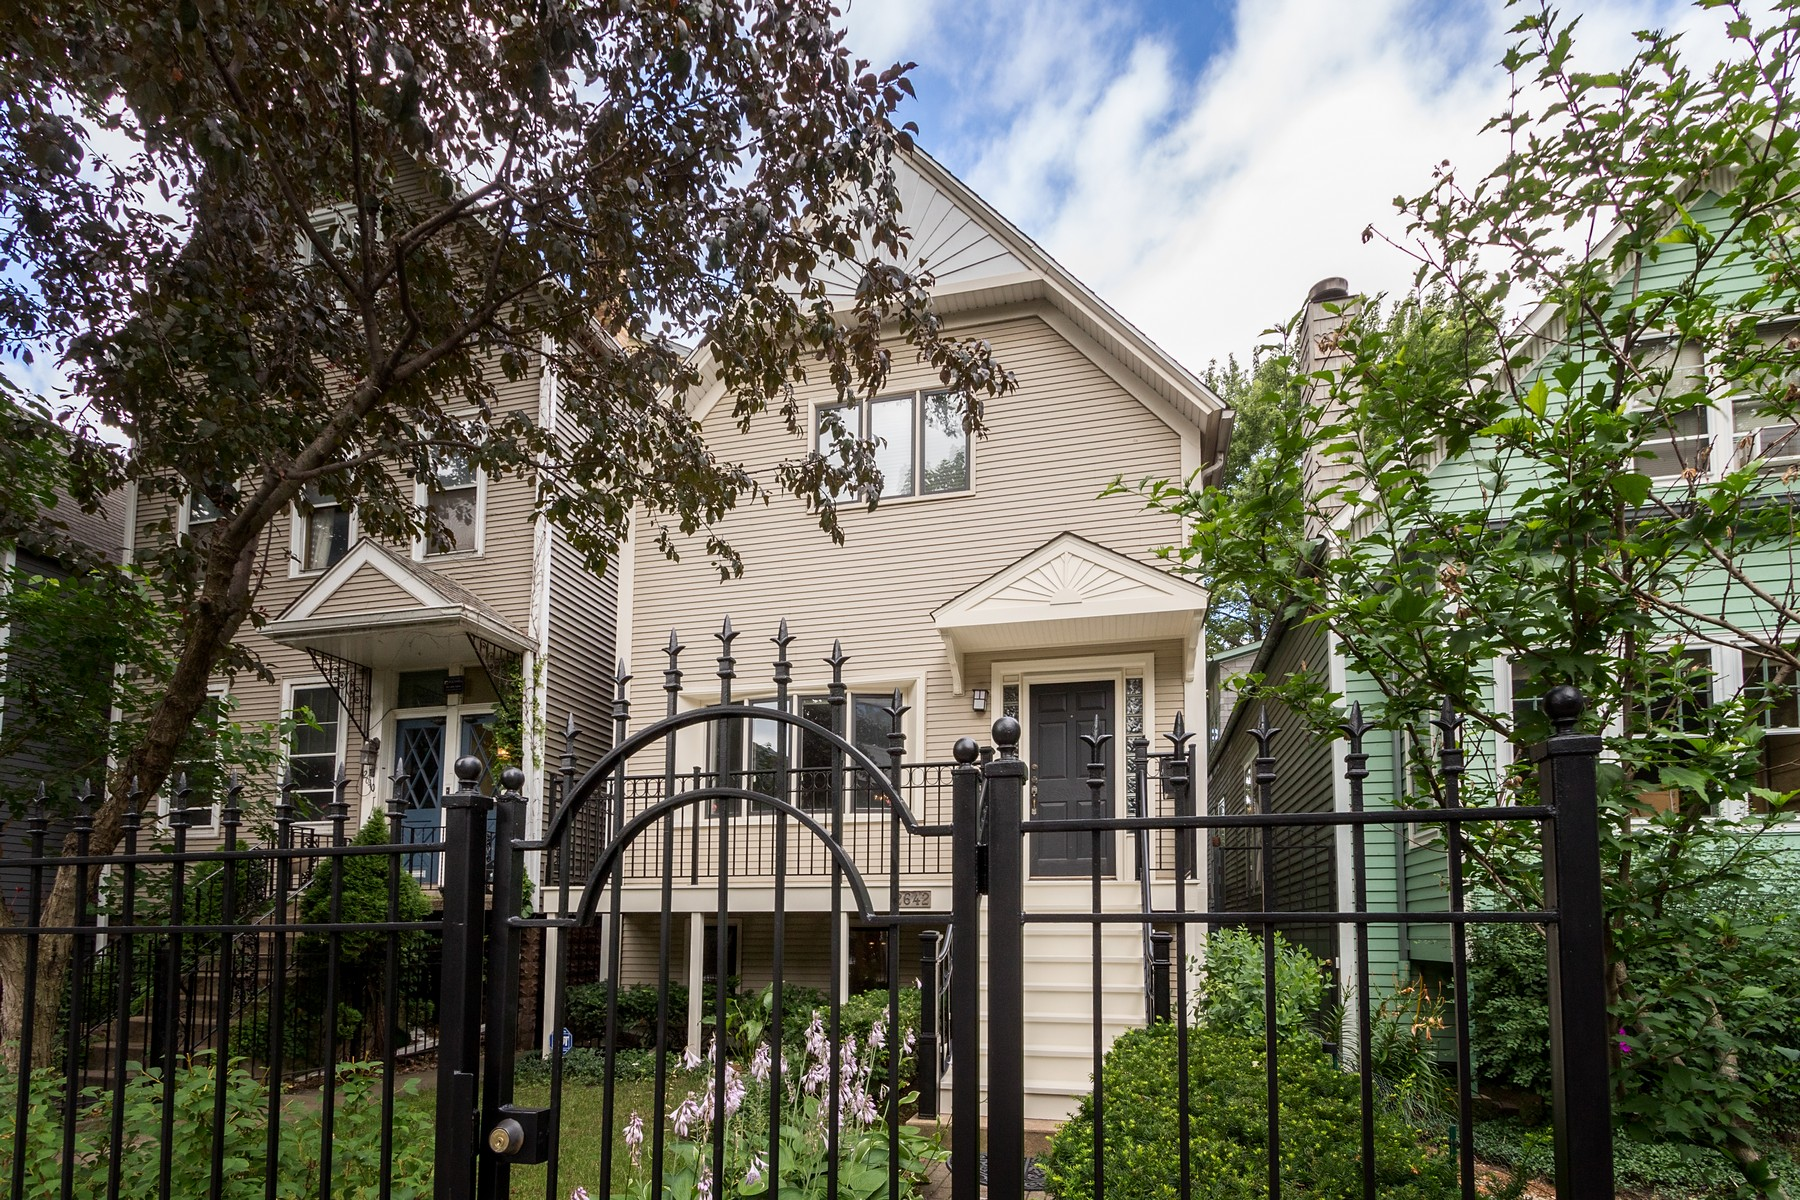 Single Family Home for Sale at Luxury Modern Home in Lincoln Park 2642 N Burling Street Chicago, Illinois, 60614 United States